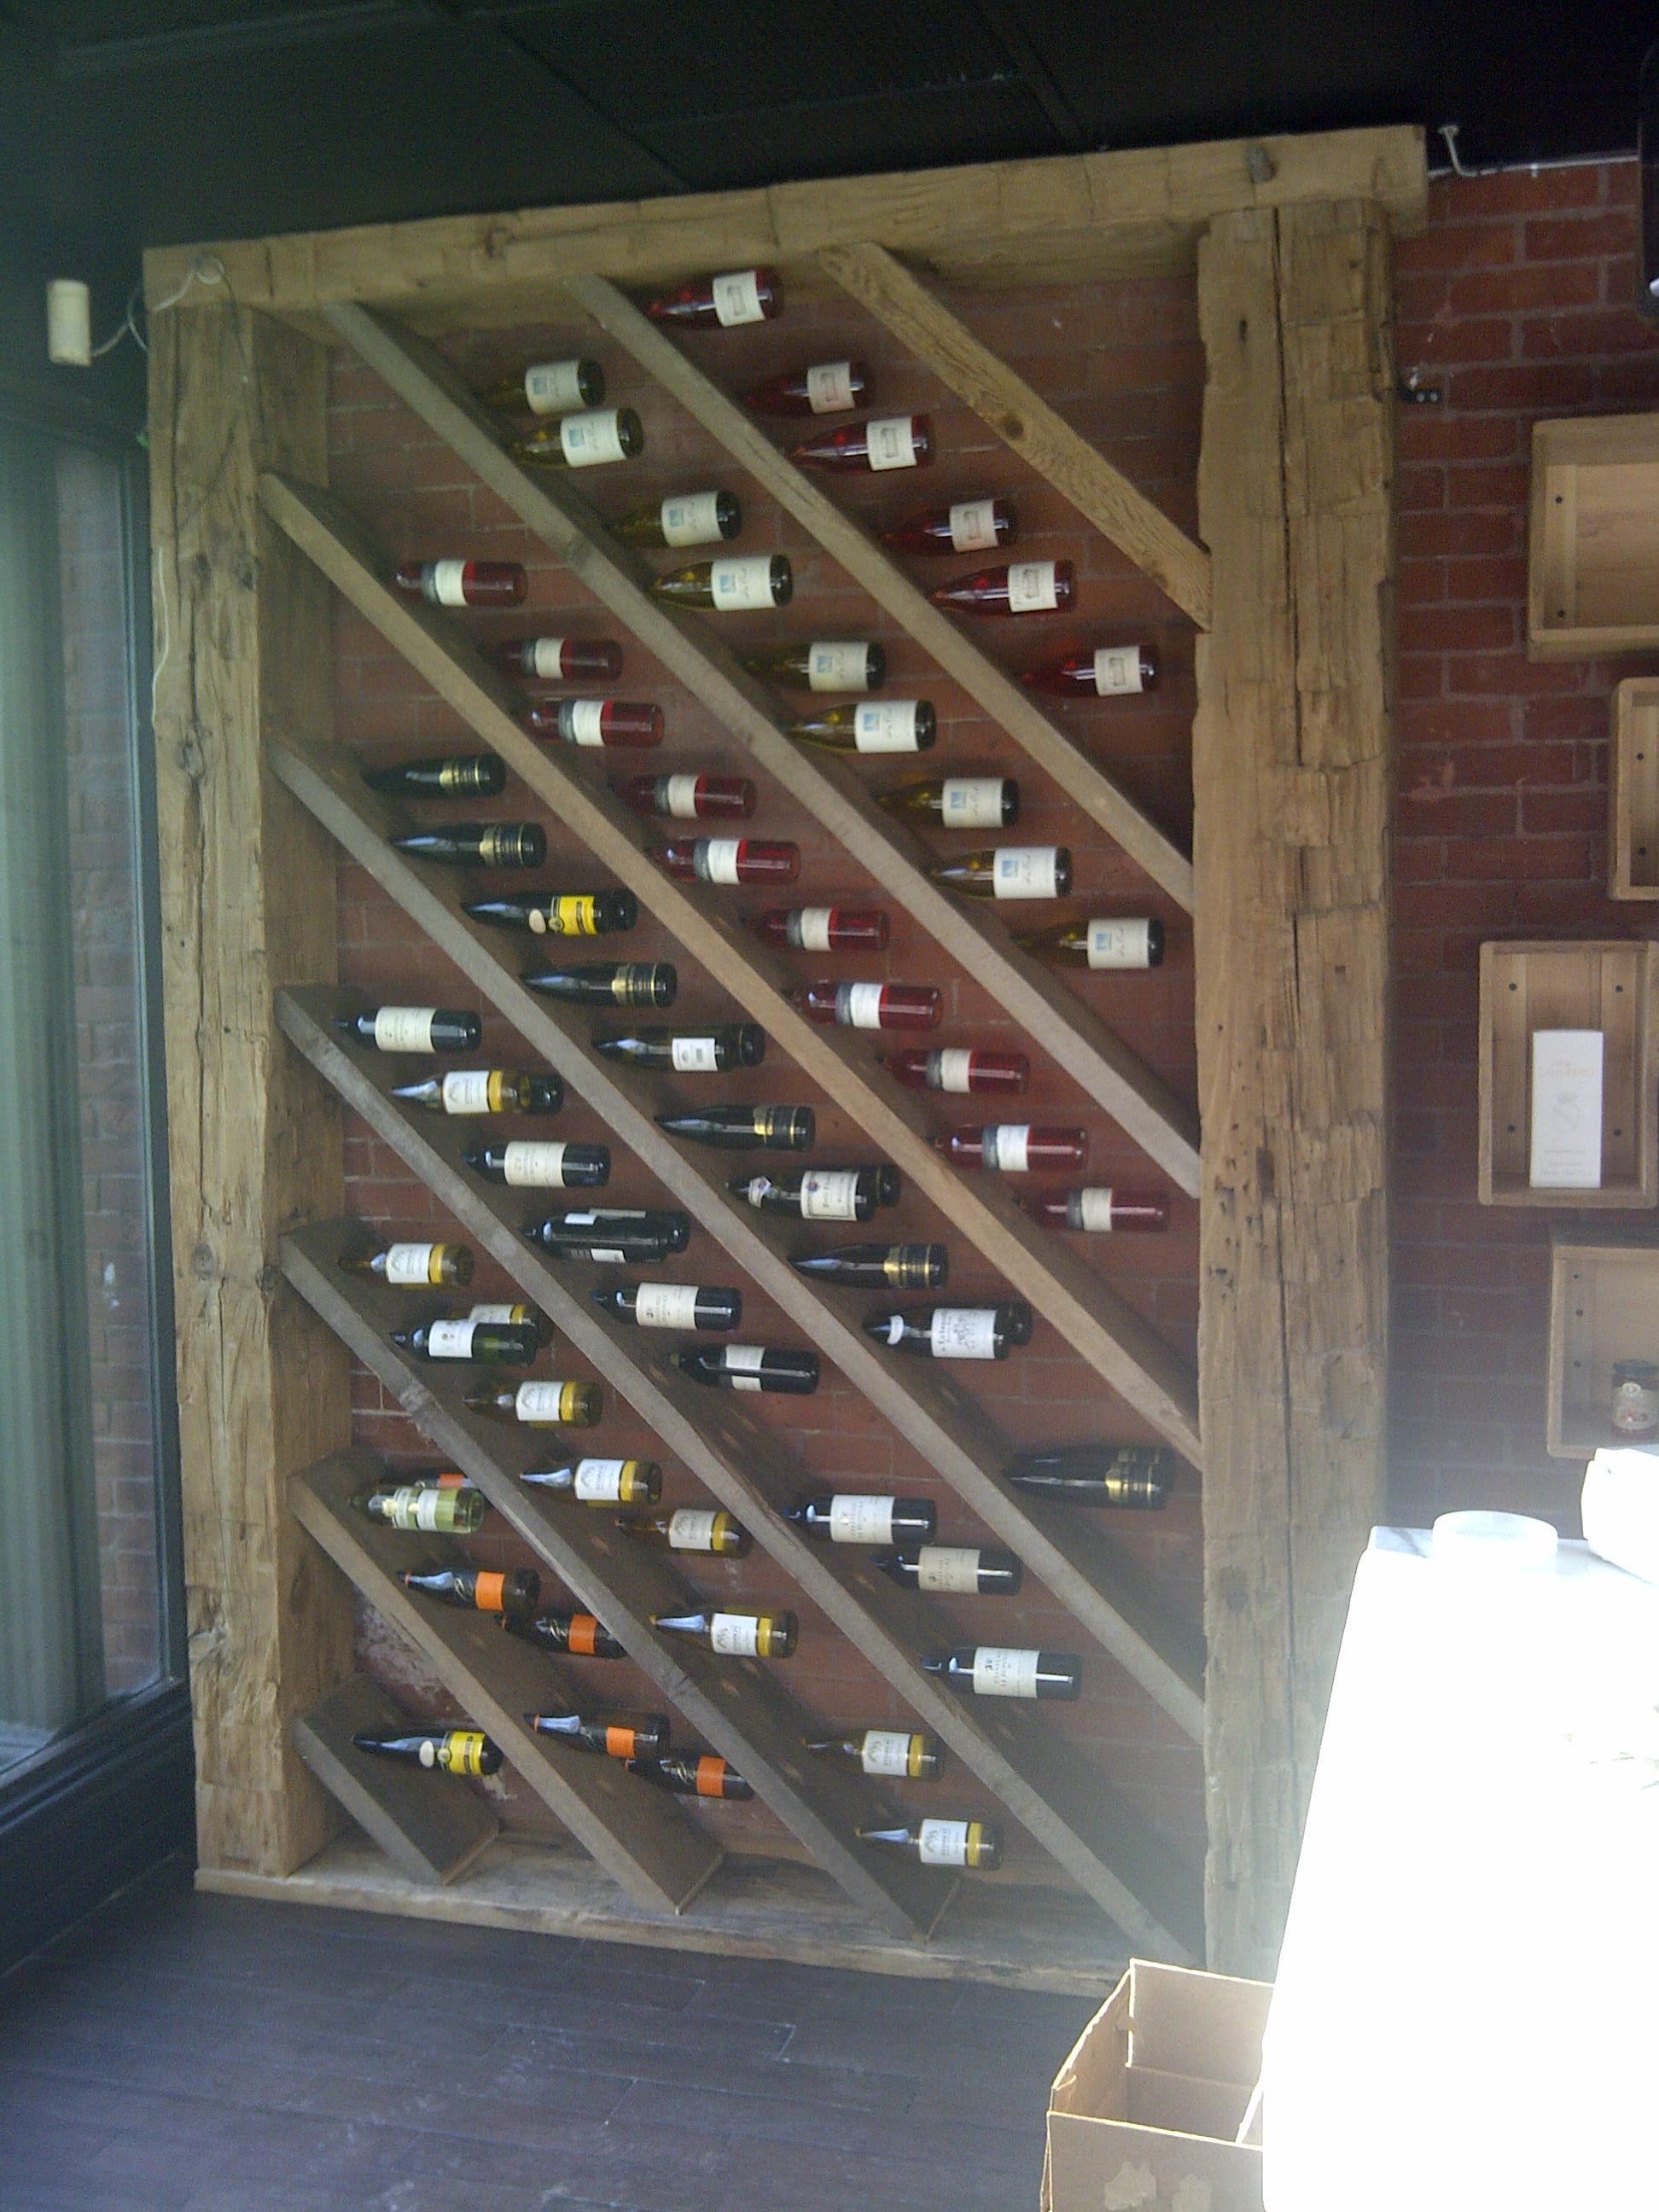 Capacity for about 100 bottles of wine. 9.5' tall.  Looks right at home against the 120 year old brick wall.